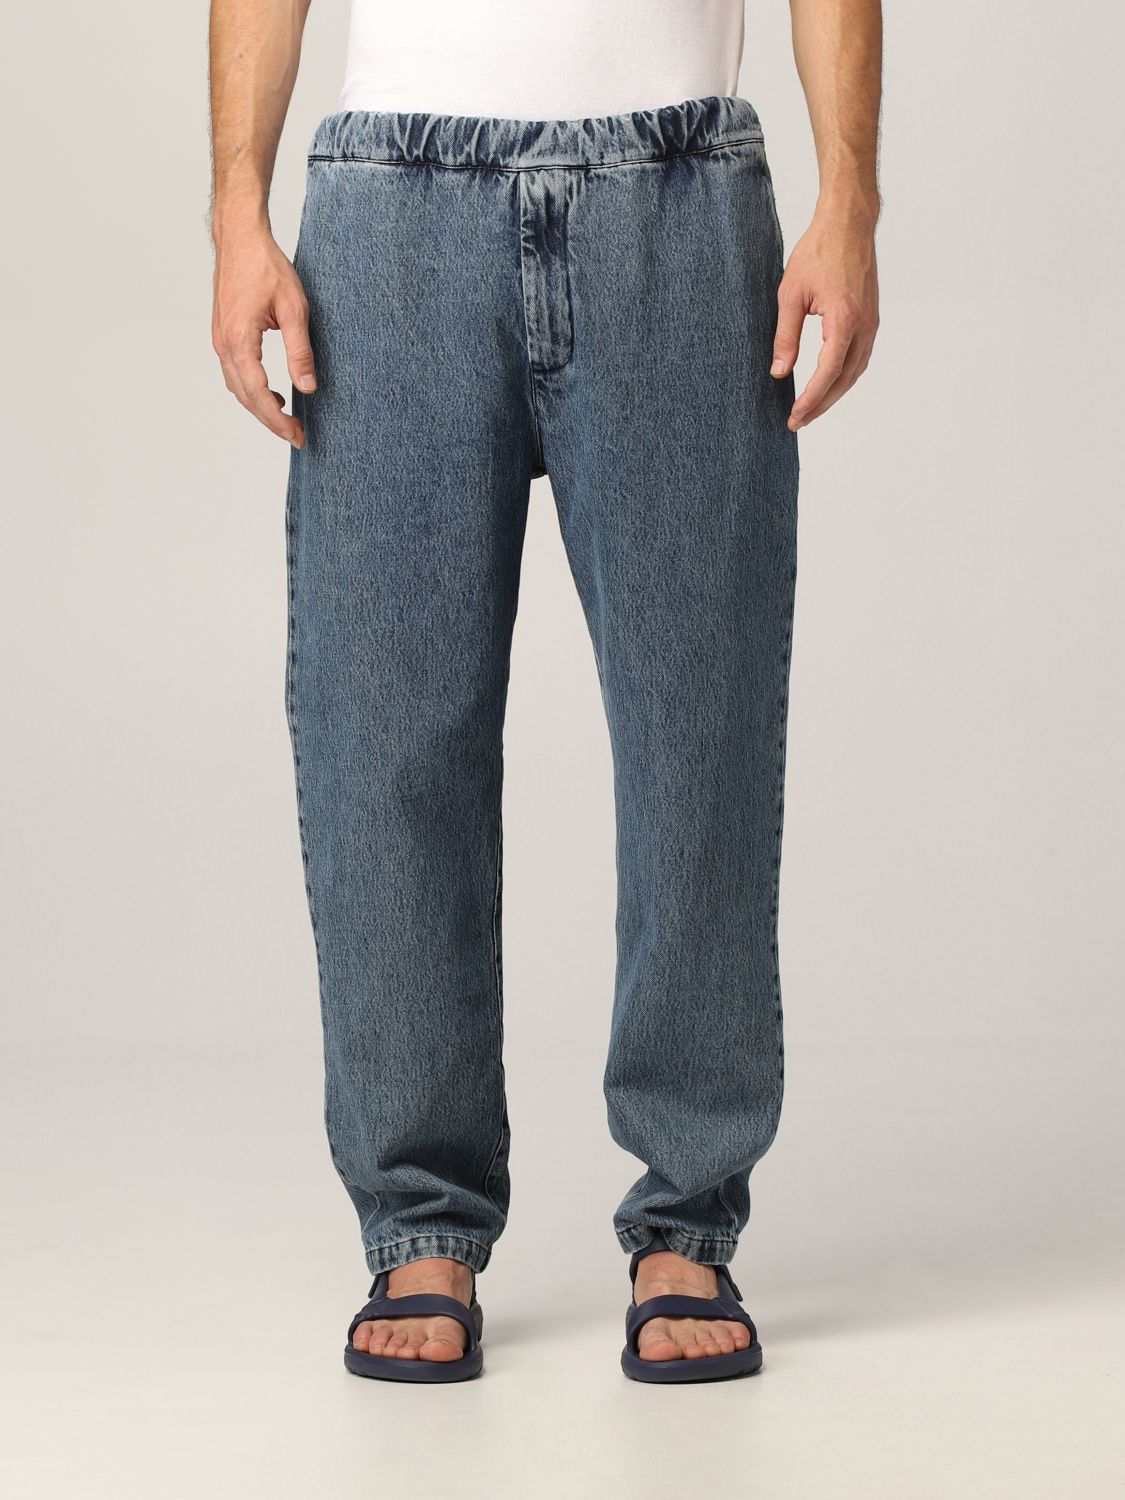 Jeans Silted: Jeans hombre Silted azul oscuro 1